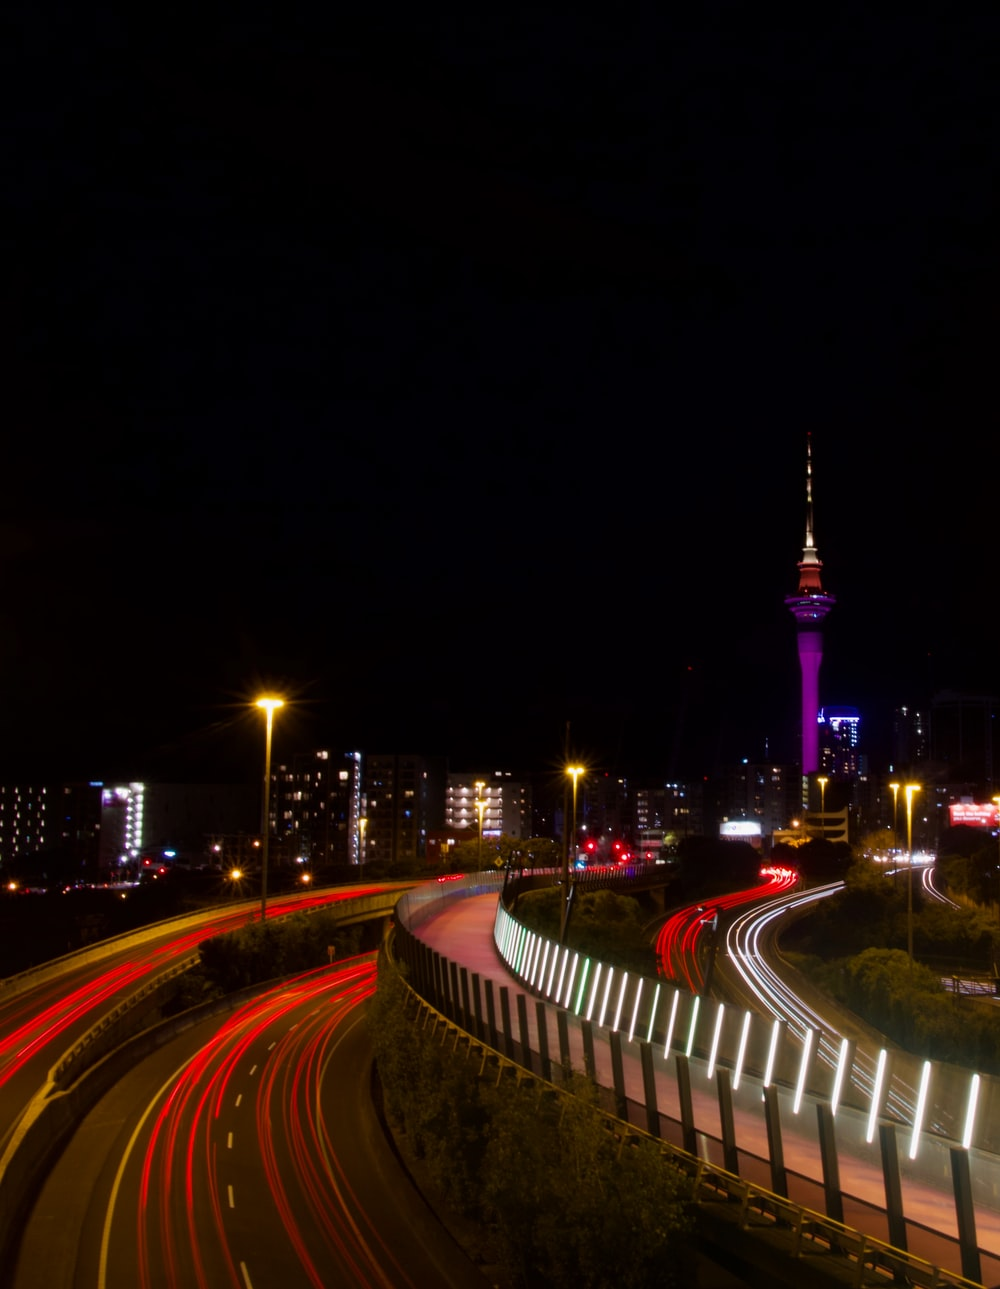 Sky Tower Auckland New Zealand Pictures Download Free Images On Unsplash Sunset sky tower lights city night